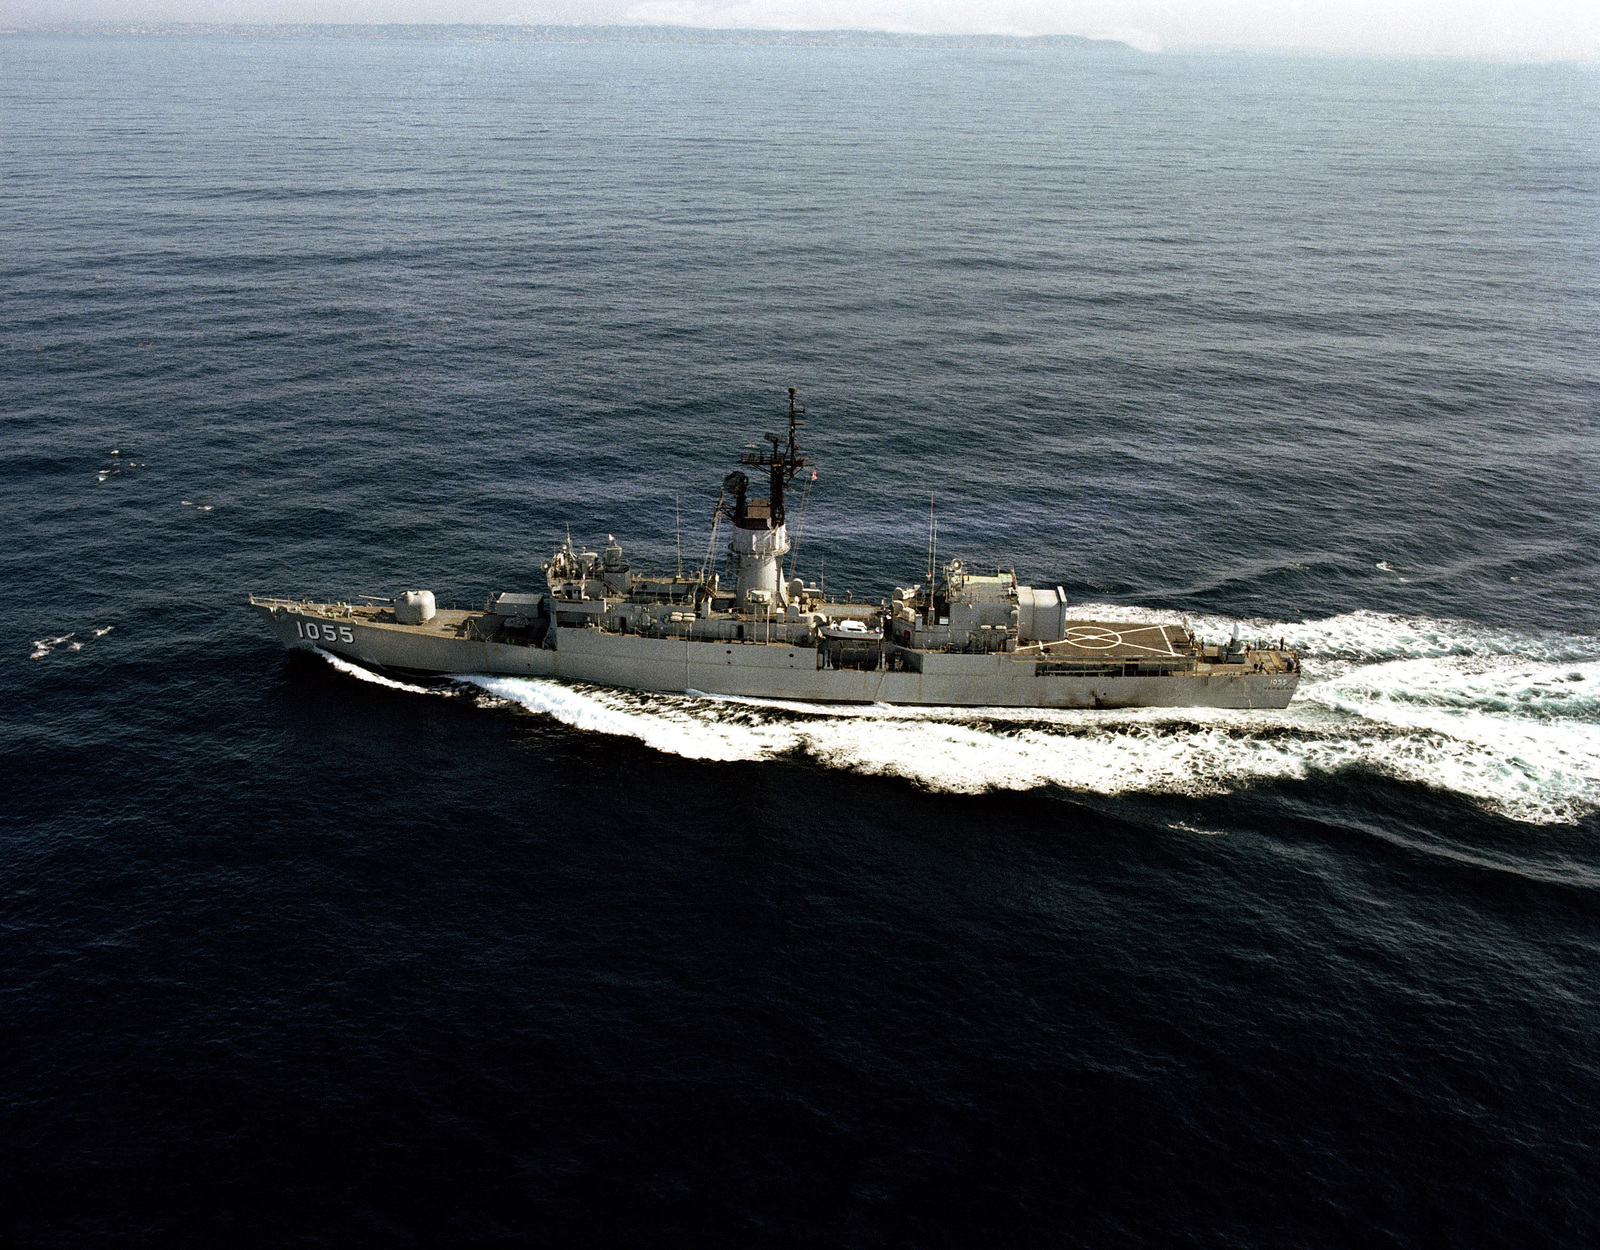 Aerial port beam view of the frigate USS HEPBURN (FF 1055) underway